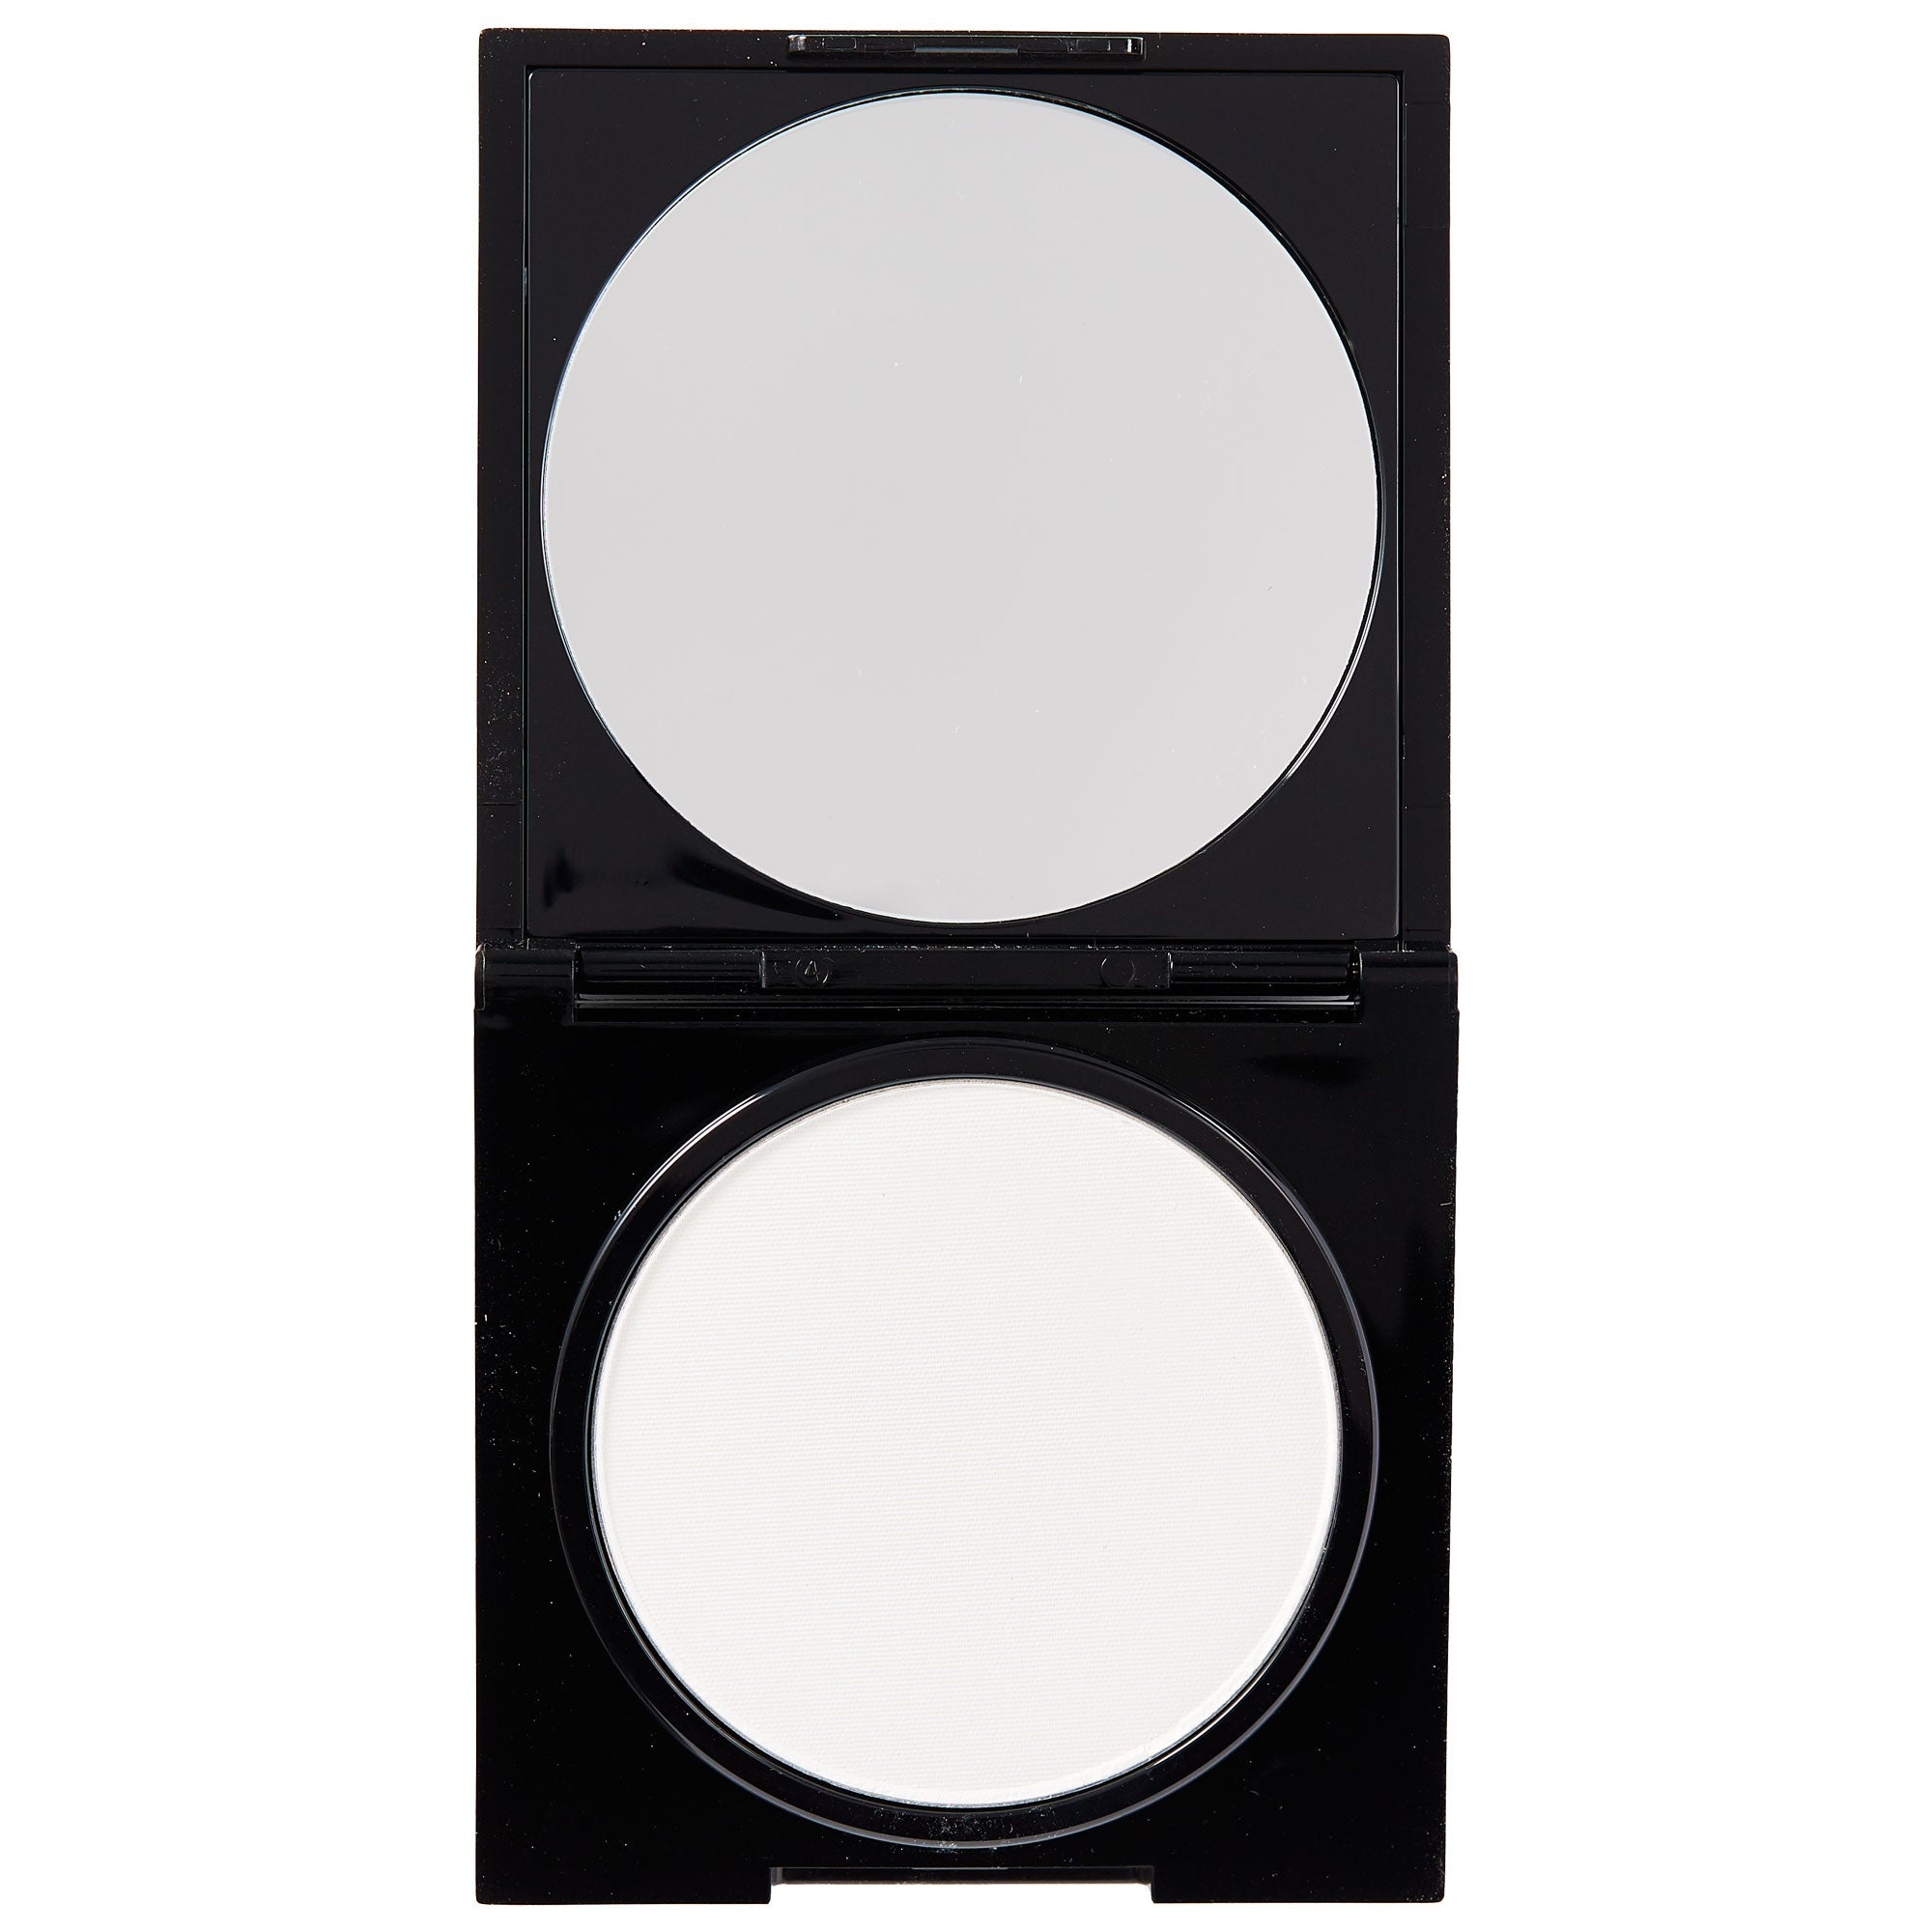 Pressed Hi-Def Invisible Blotting Powder - HeyBabe Cosmetics